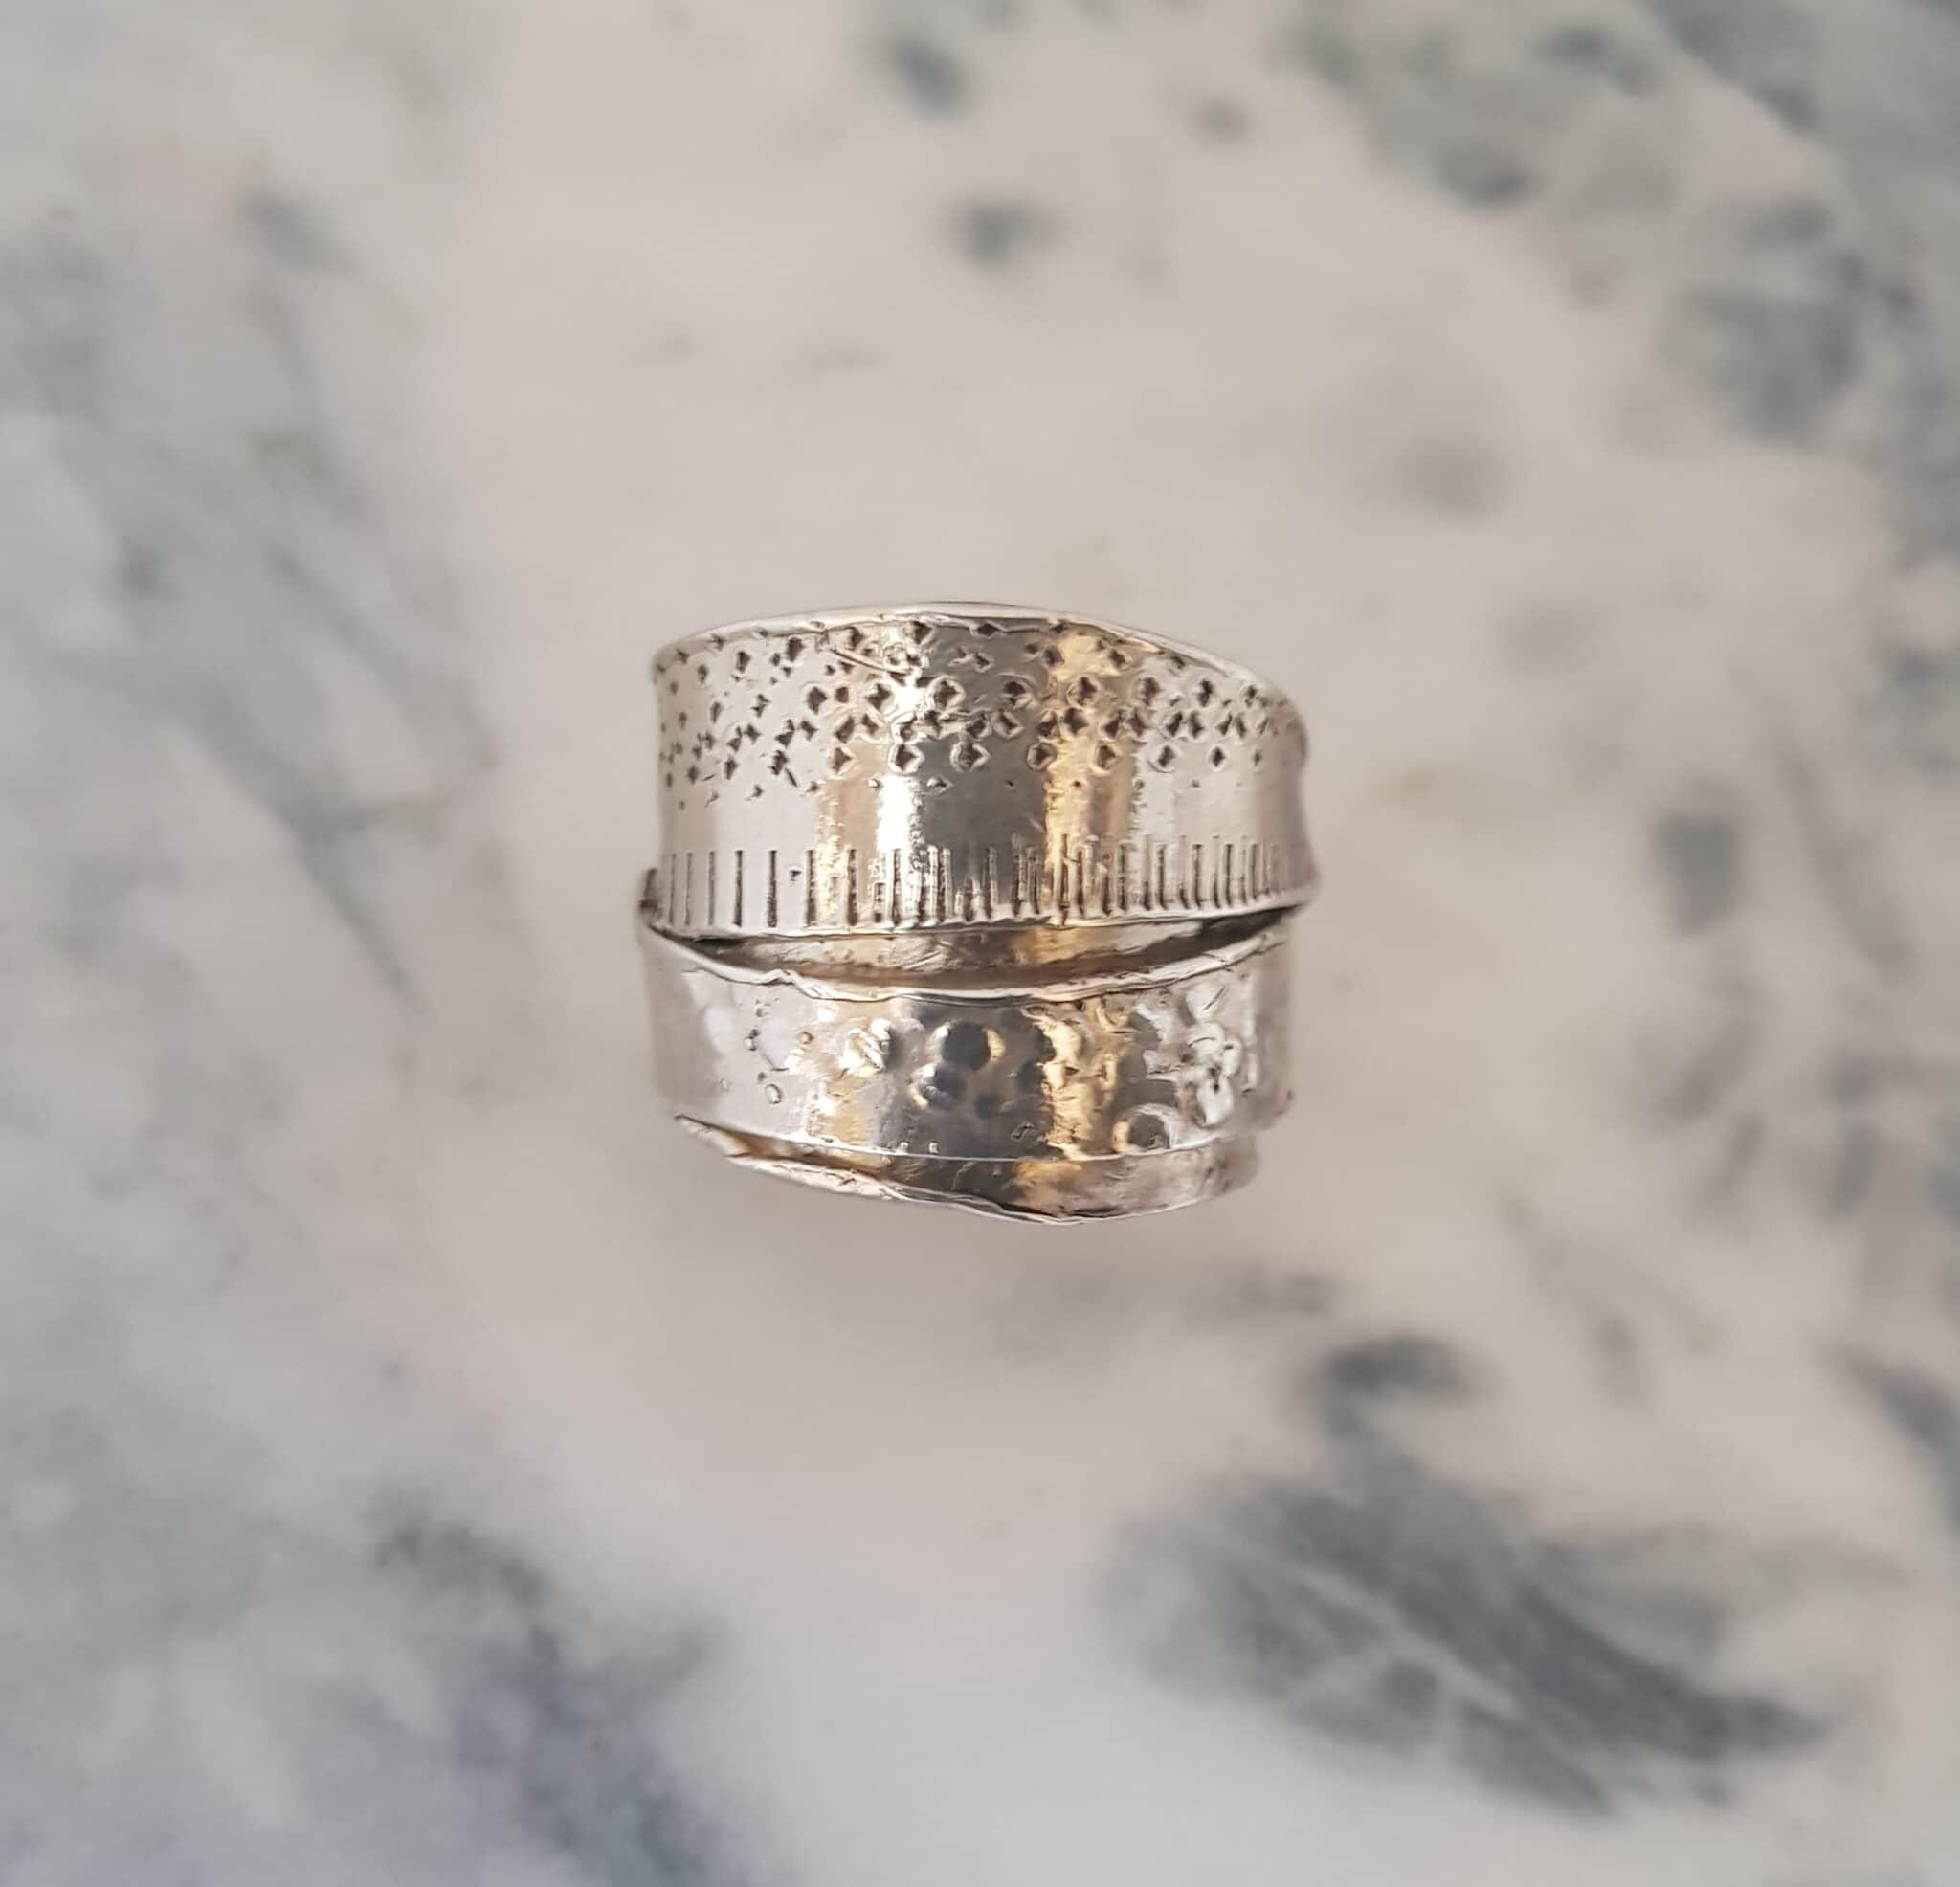 Size X Textured Layered Wrapped Ring By Corinne Lomon